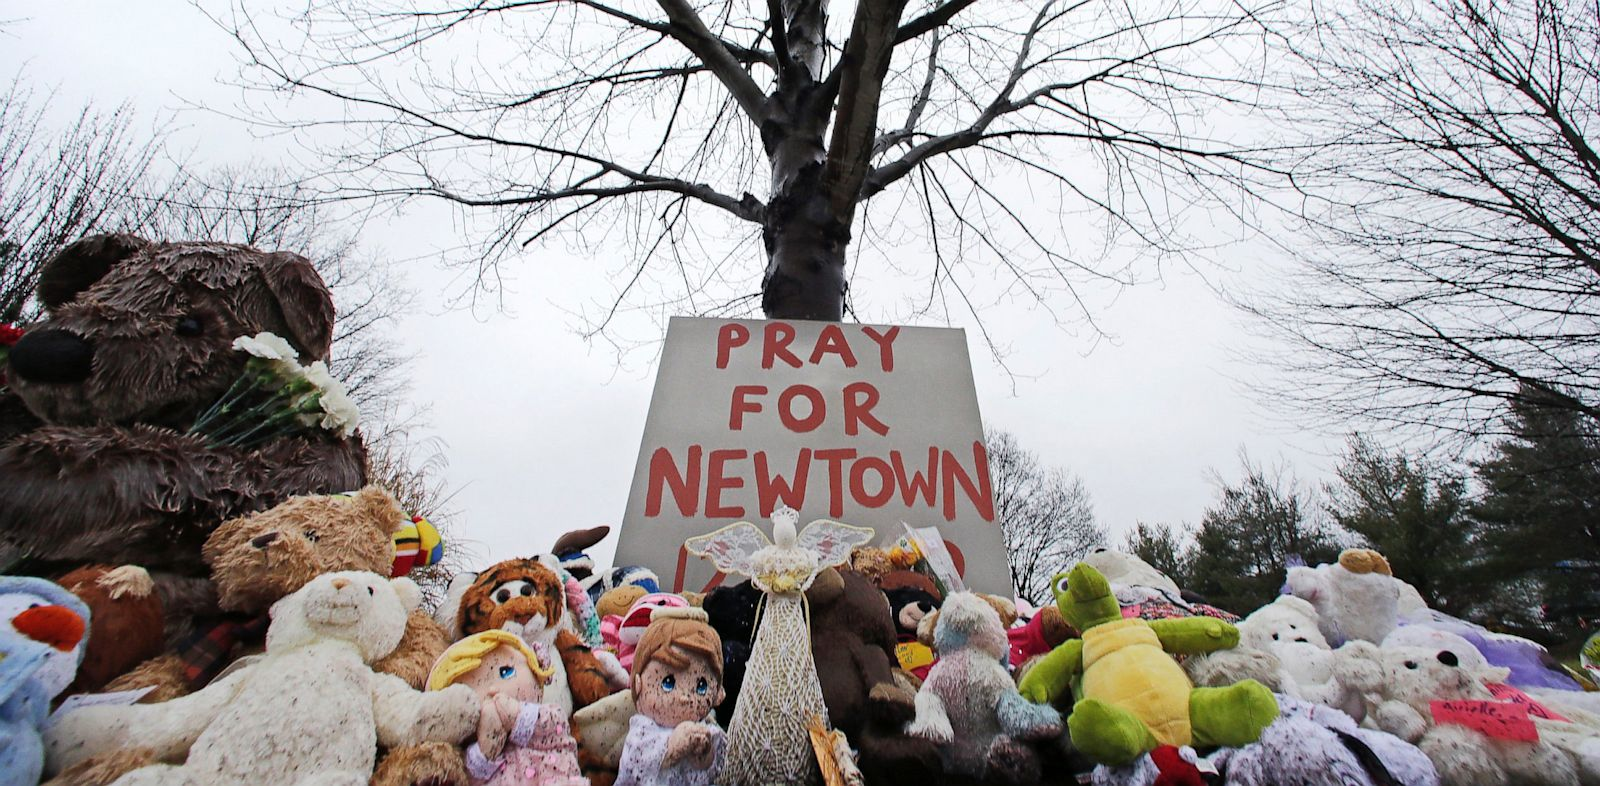 PHOTO: Residents in Newtown will be voting on whether or not to accept a huge gift from the state to rebuild Sandy Hook School